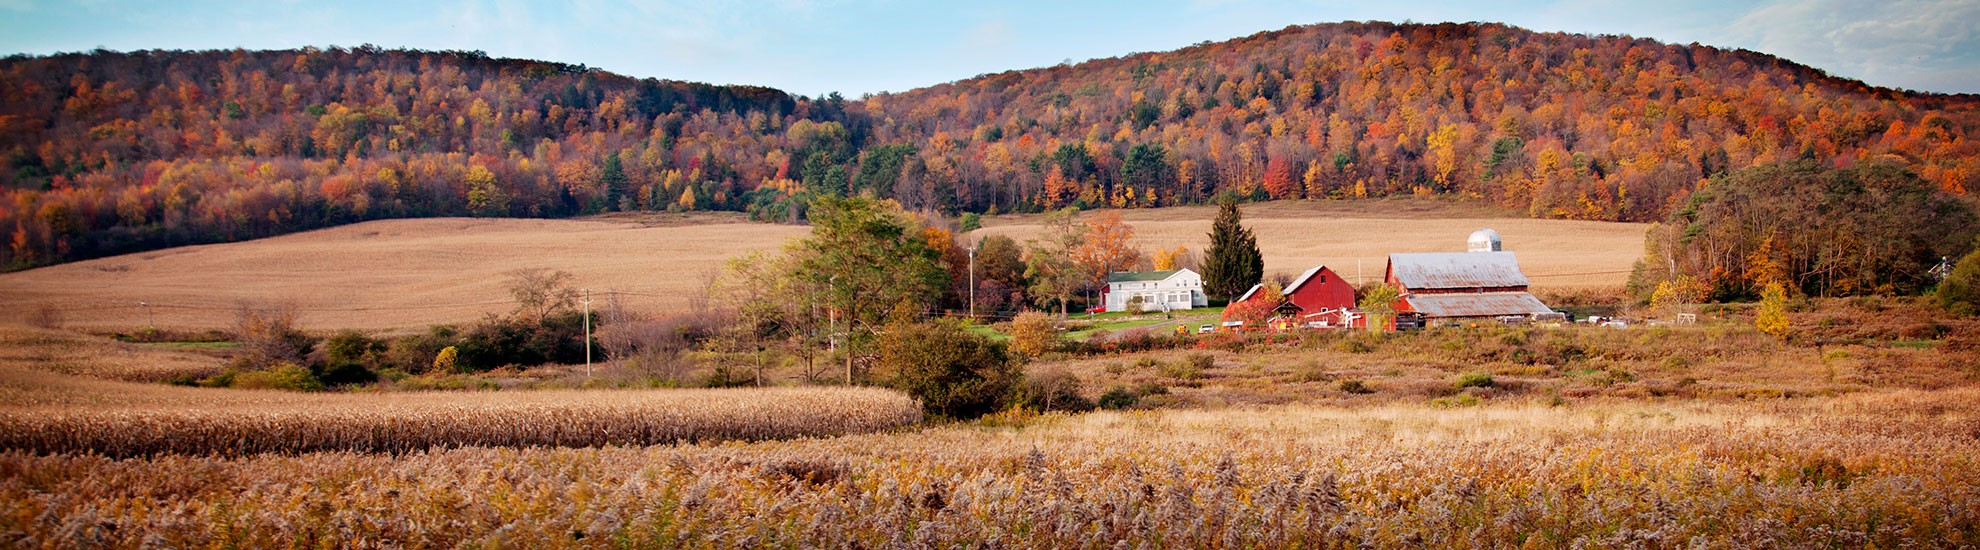 The Town of Dryden, N.Y.